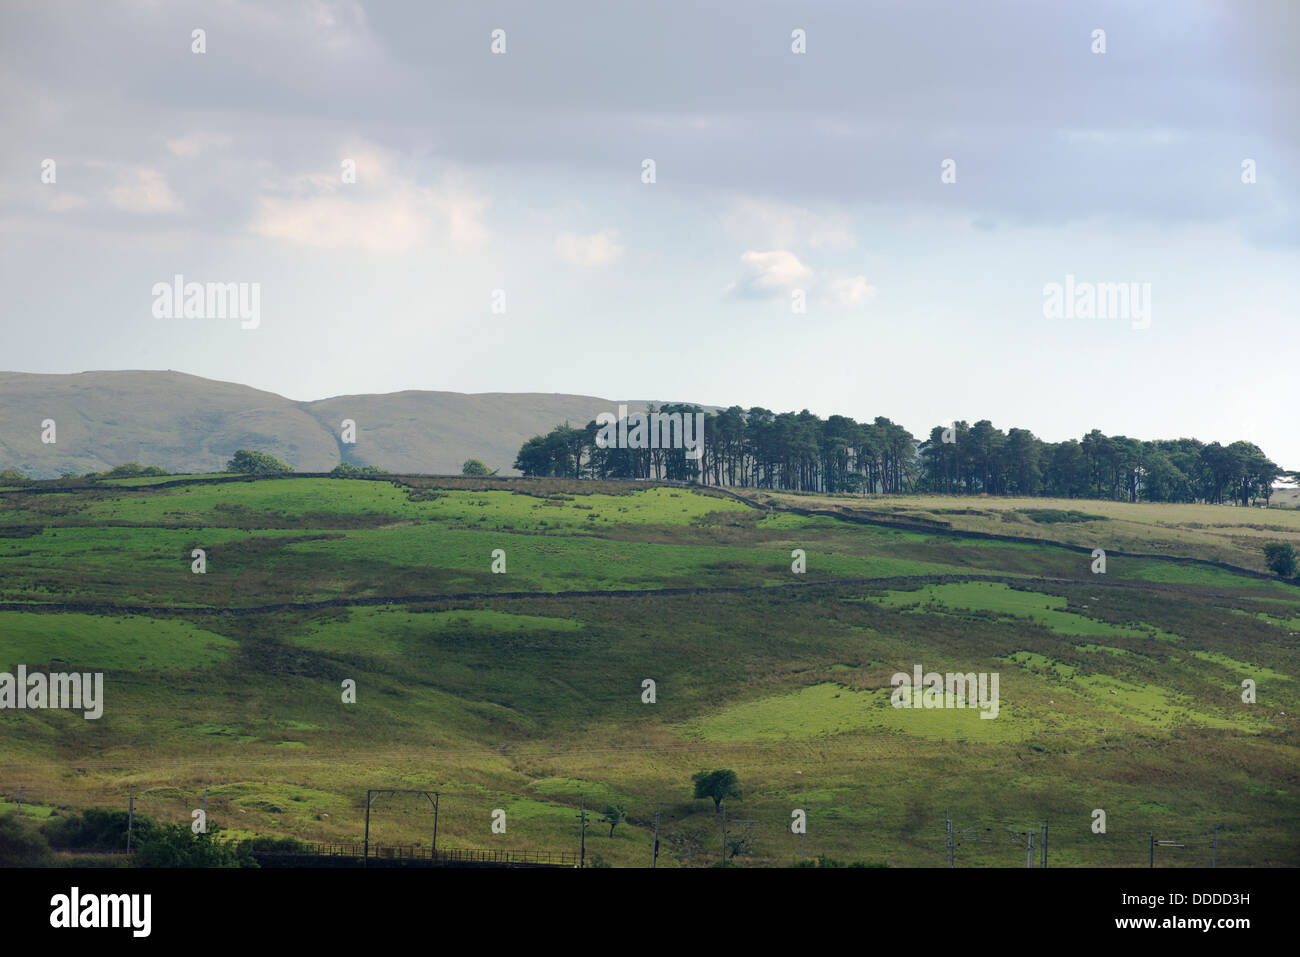 Stand of Caledonian pine in hill farming country, Cumbria, England. - Stock Image